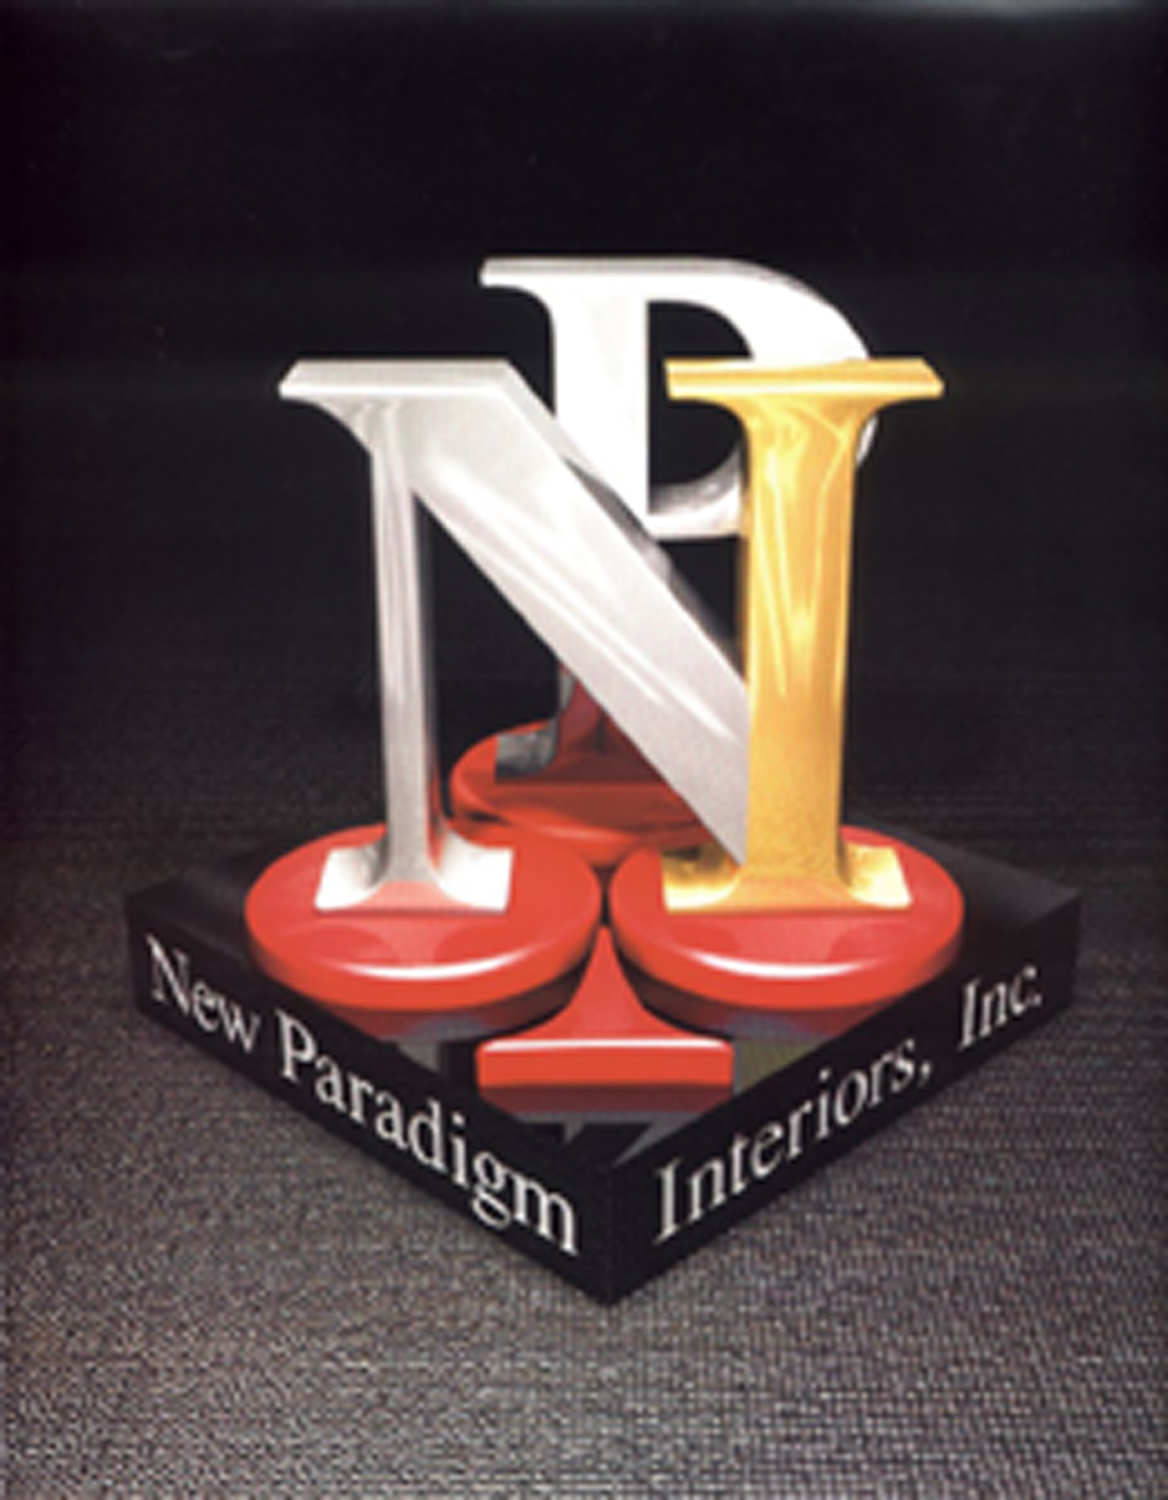 New Paradigm Interiors, Inc.